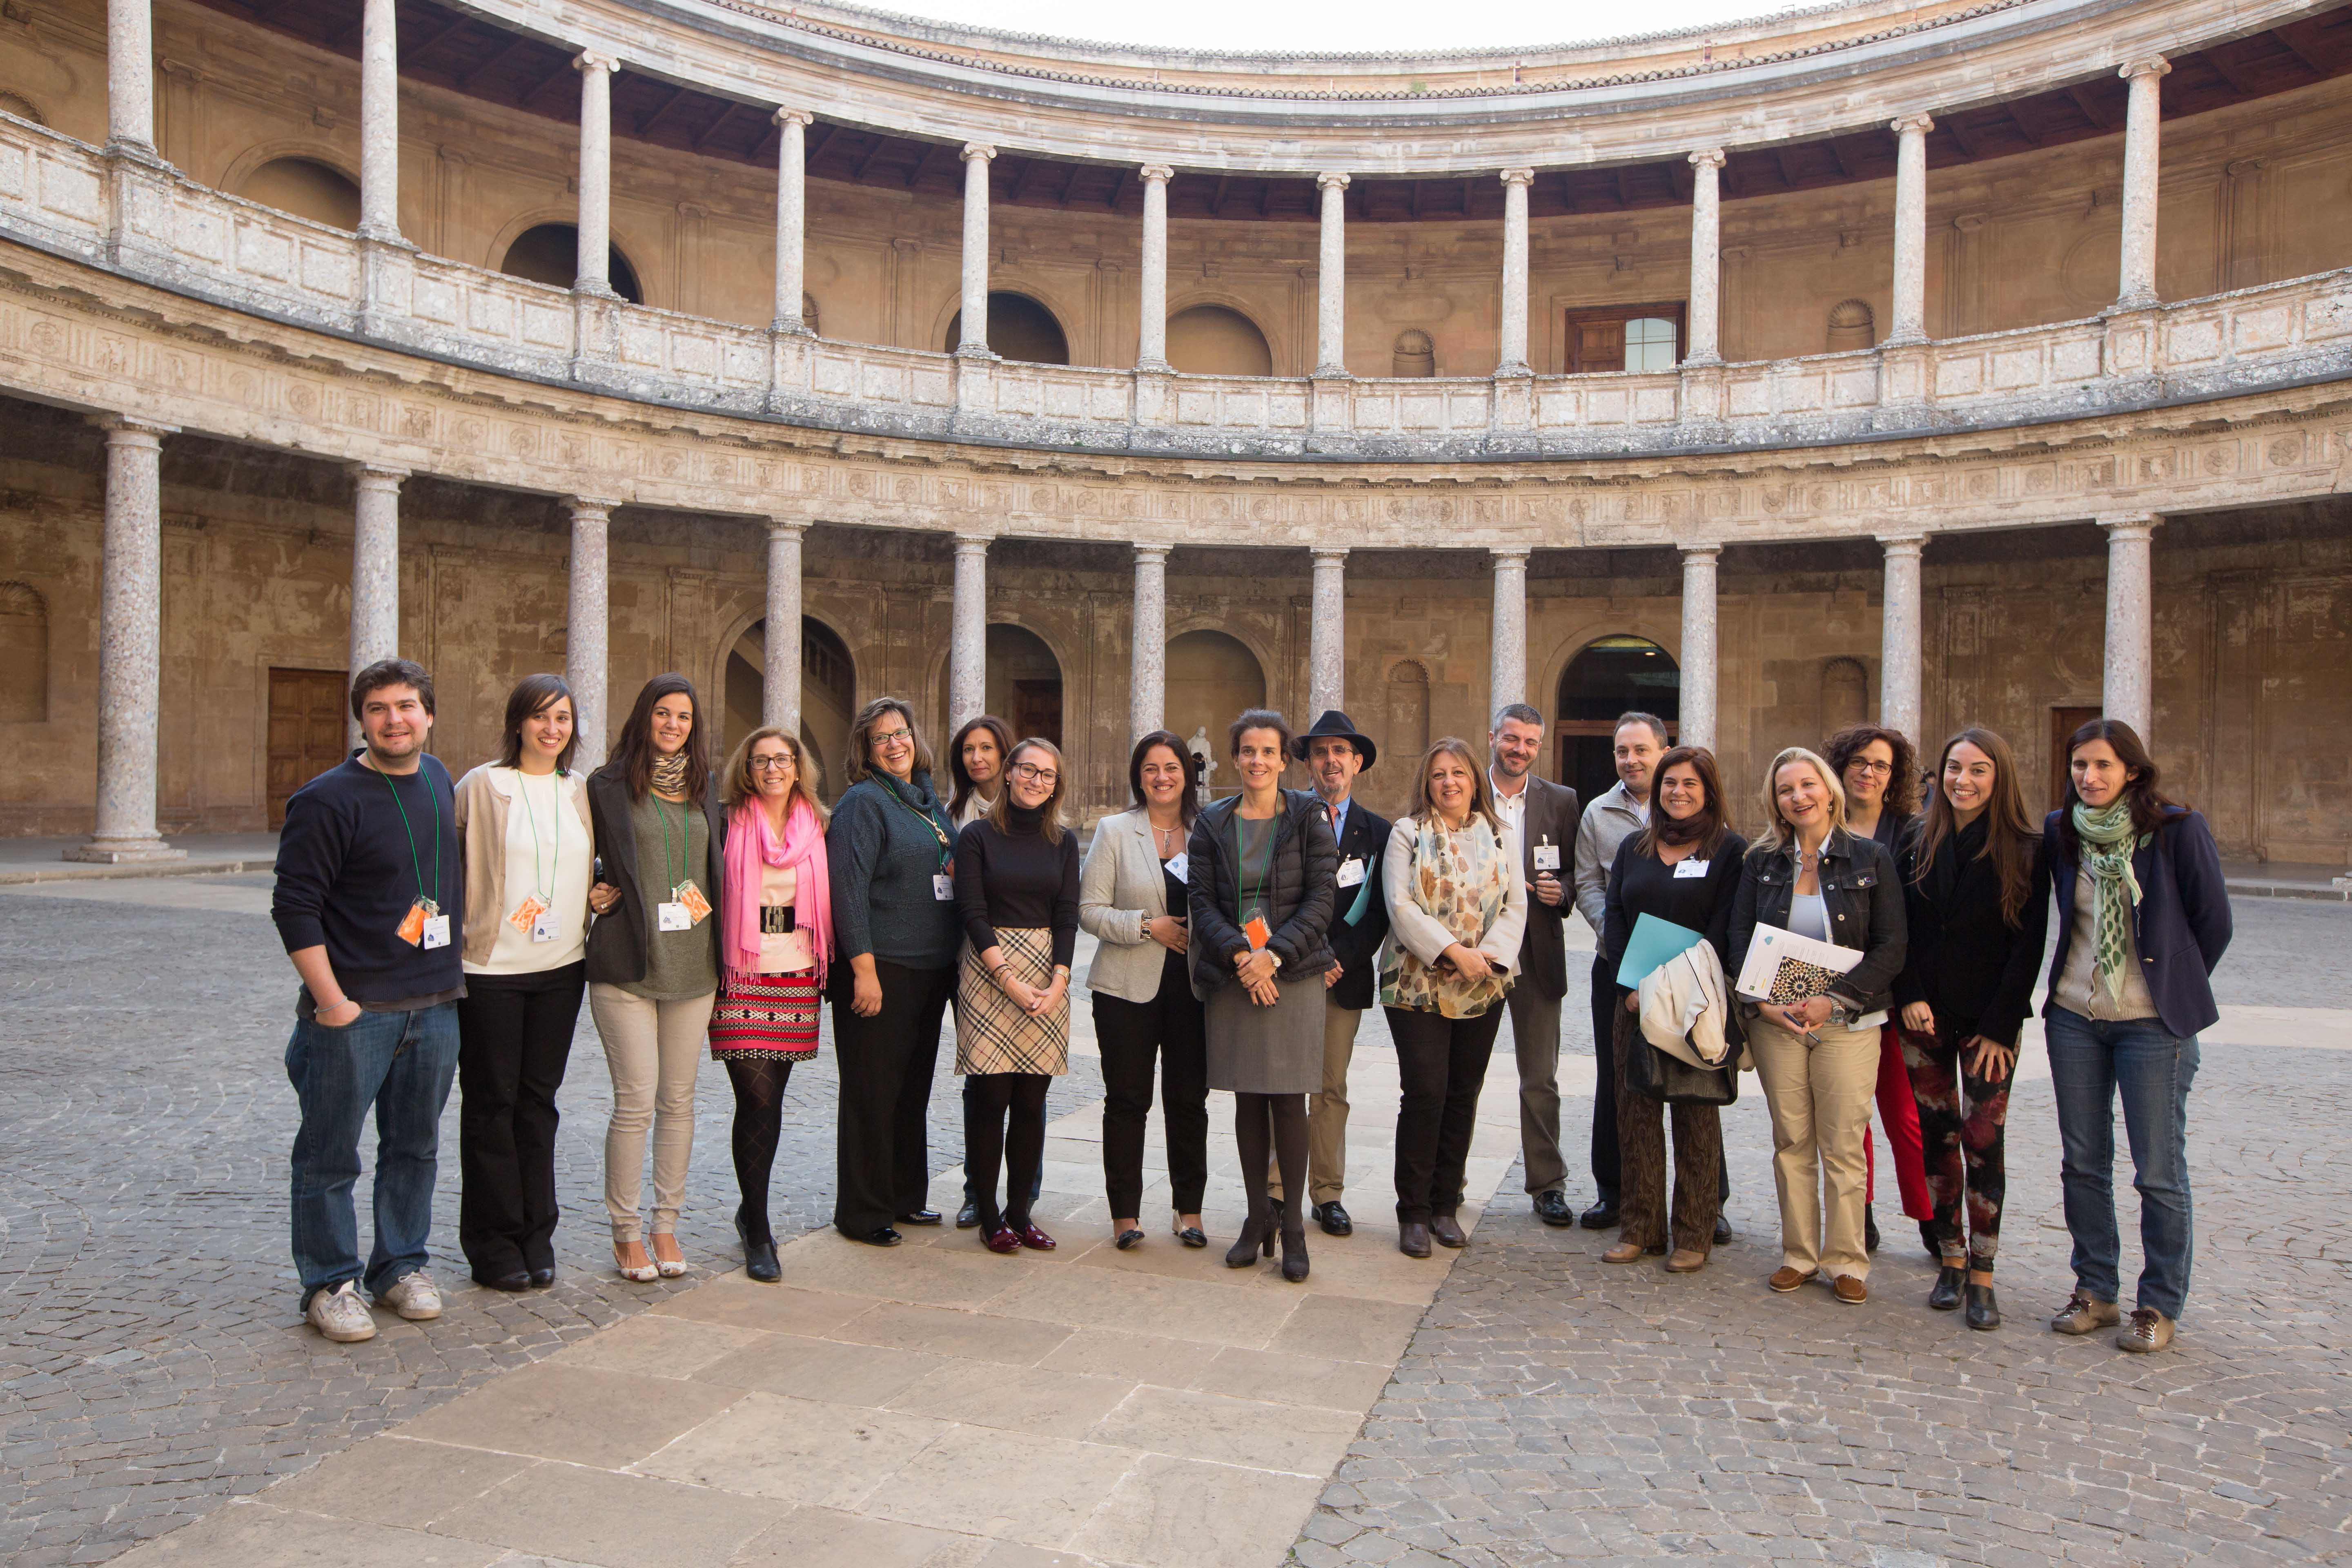 The Alhambra hosts a meeting of experts to debate the use of cloud-based technological applications in cultural environments